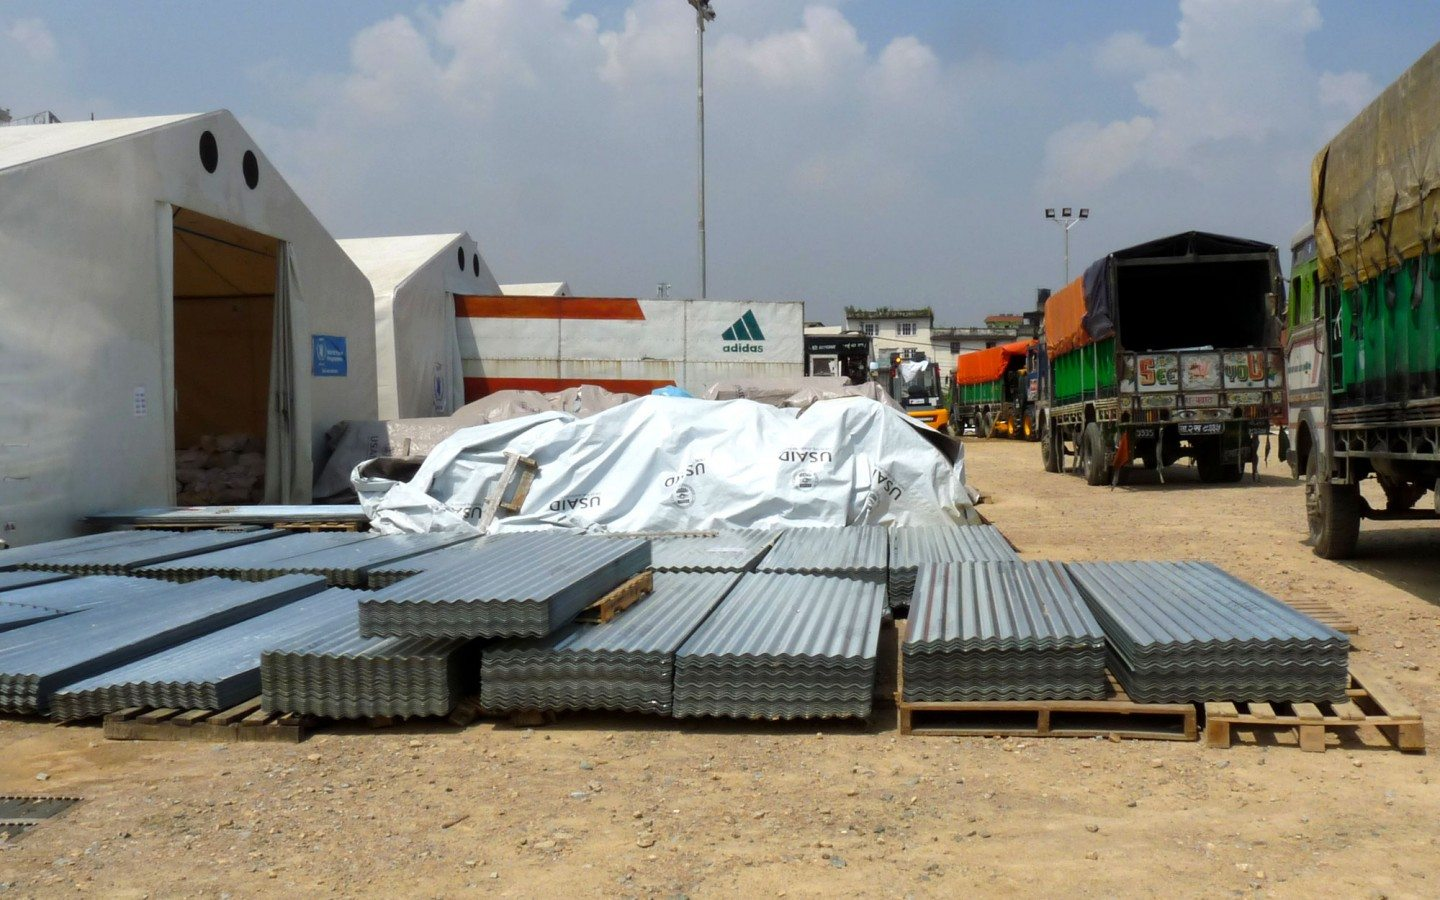 Zinc roofing materials for homes and shelters awaits distribution at the WFP base in Kathmandu.